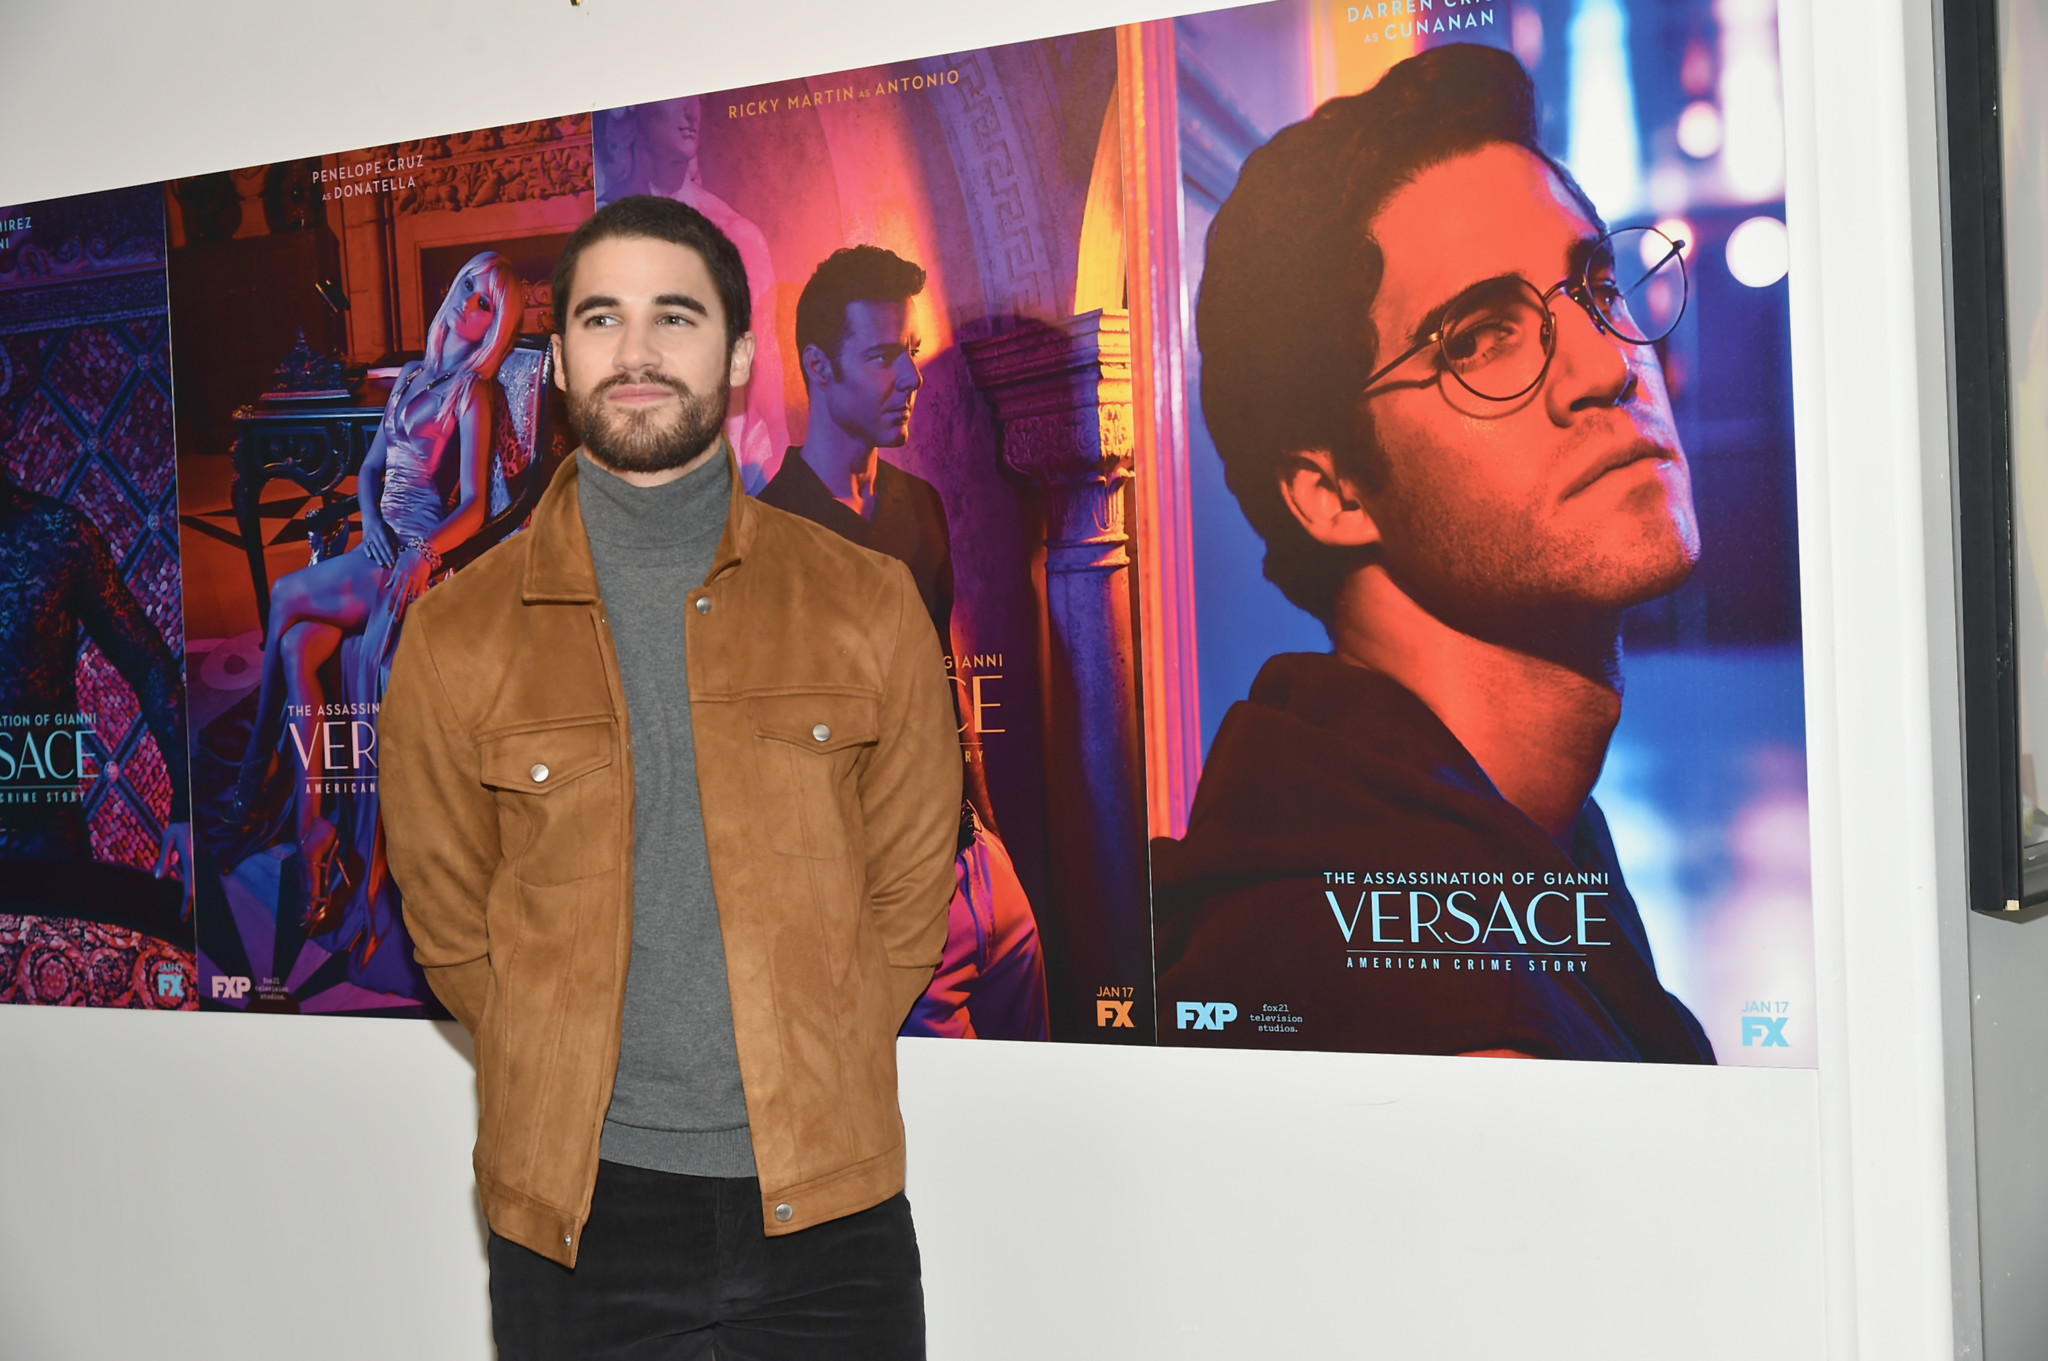 Forum on this topic: The Assassination of Gianni Versace: American Crime , the-assassination-of-gianni-versace-american-crime/